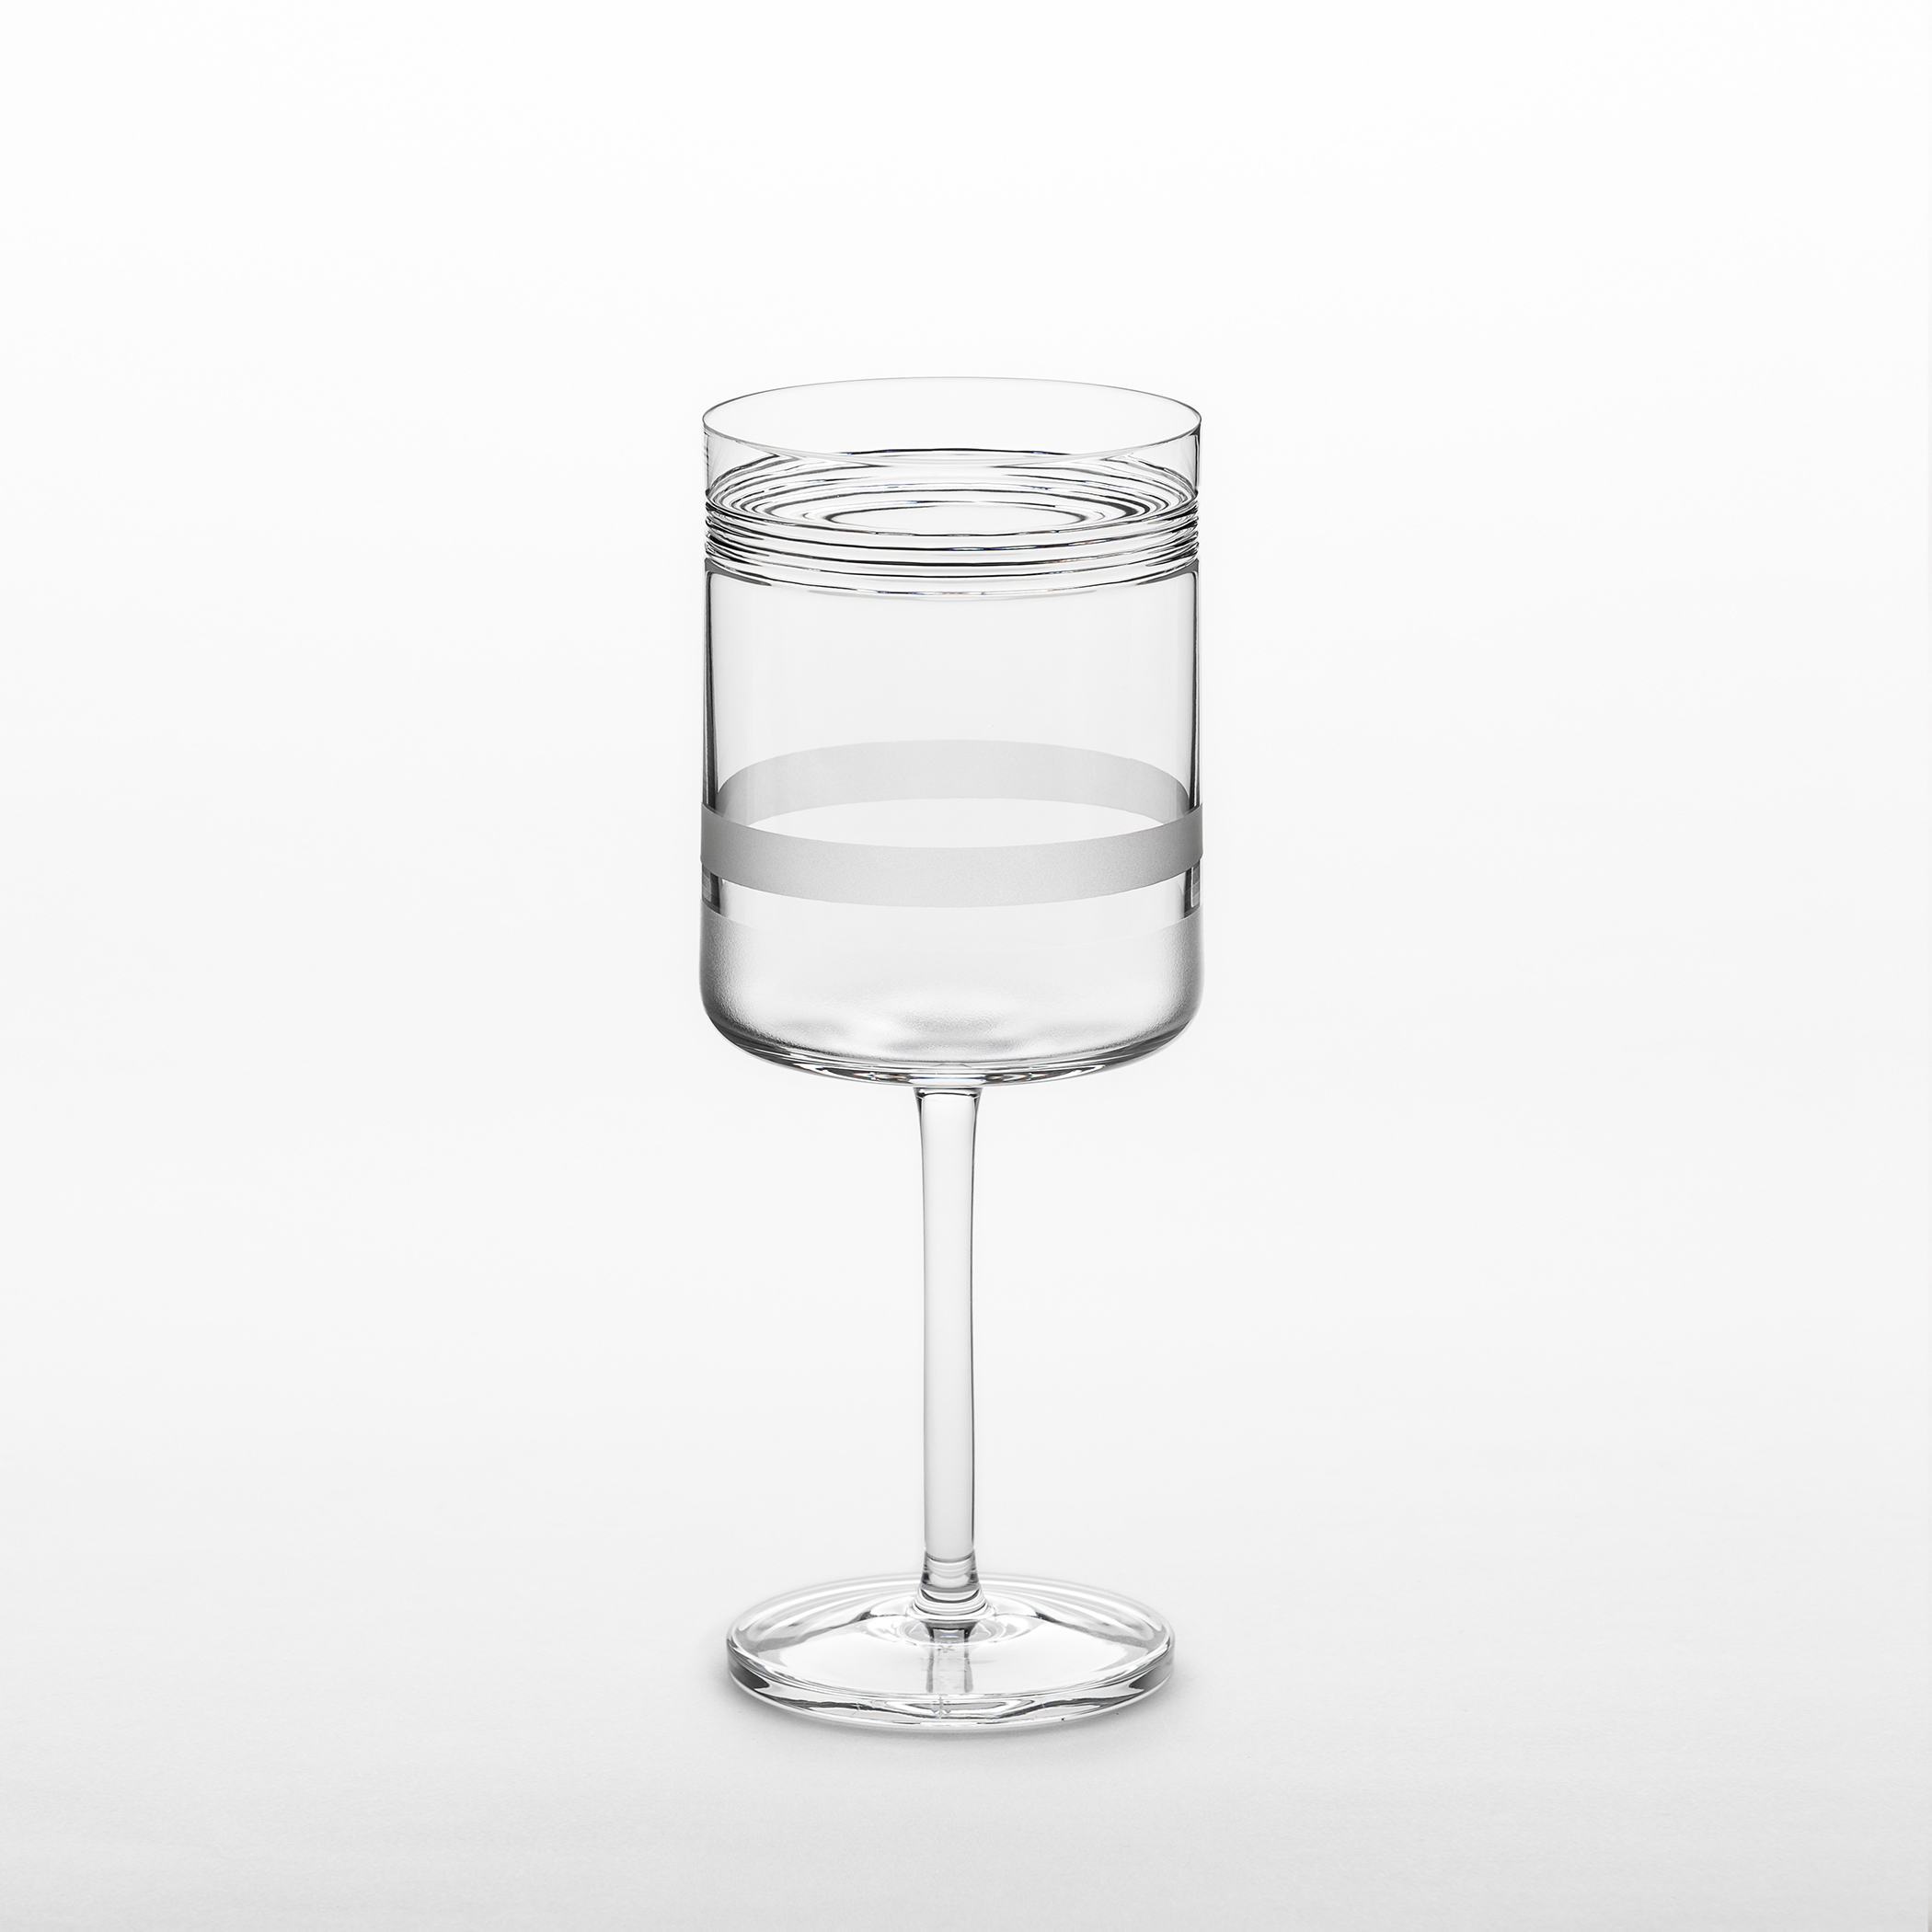 """Element Red Wine Glasses - Set of 2 - A rich assemblage of graphic markings defines the """"ELEMENTS"""" series of lead crystal. Cuts and textures of varying depth and intensity are employed across glasses to create a landscape of layered pattern that is fresh and seductive; a whole new take on the decoration of cut crystal. Sold as a set of 2  